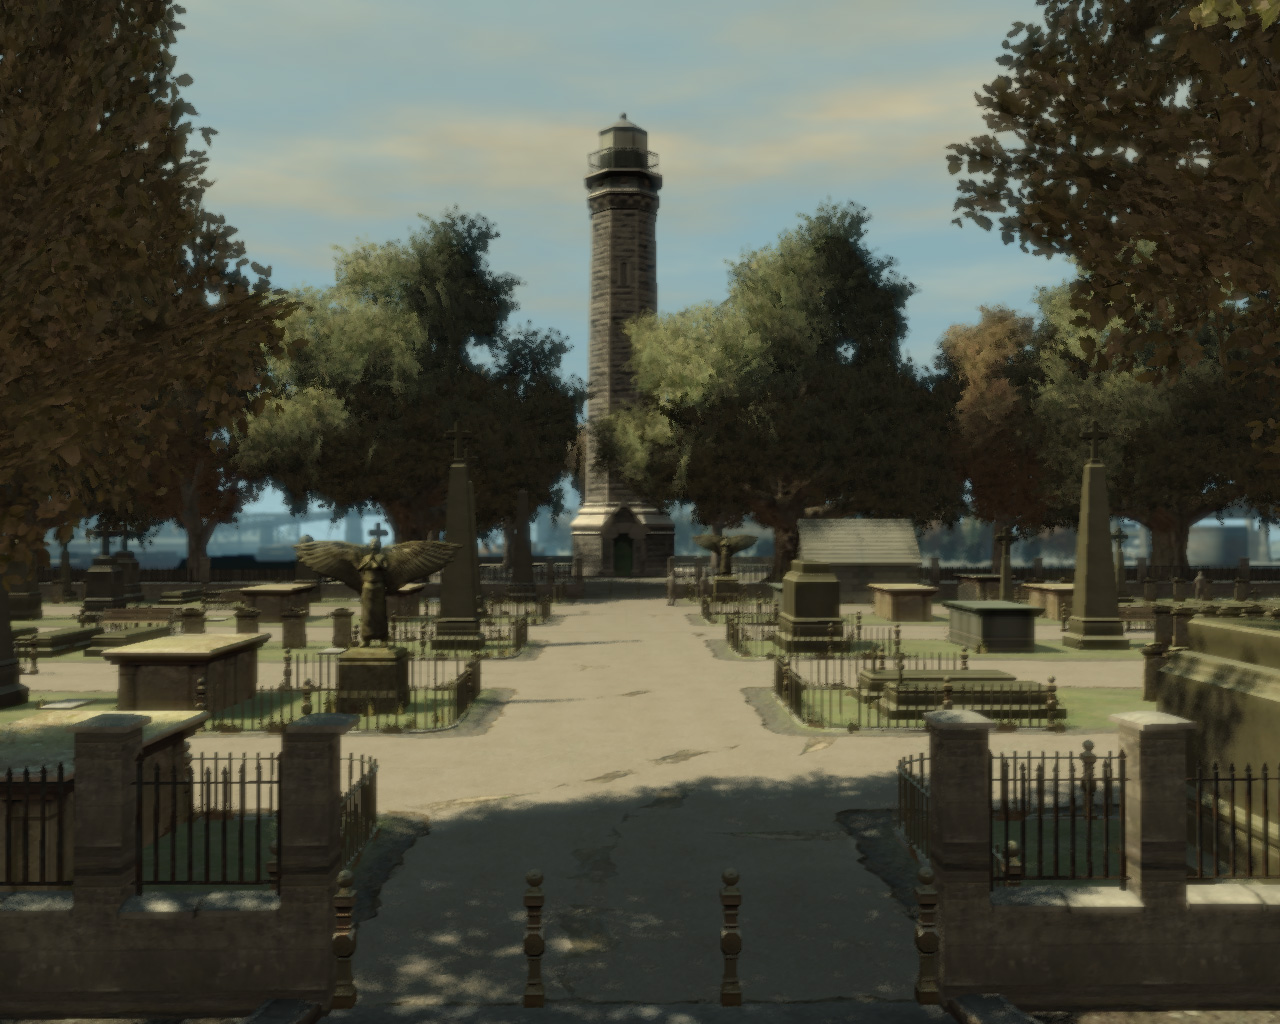 ColonyIsland-GTA4-cemeteryandlighthouse.jpg